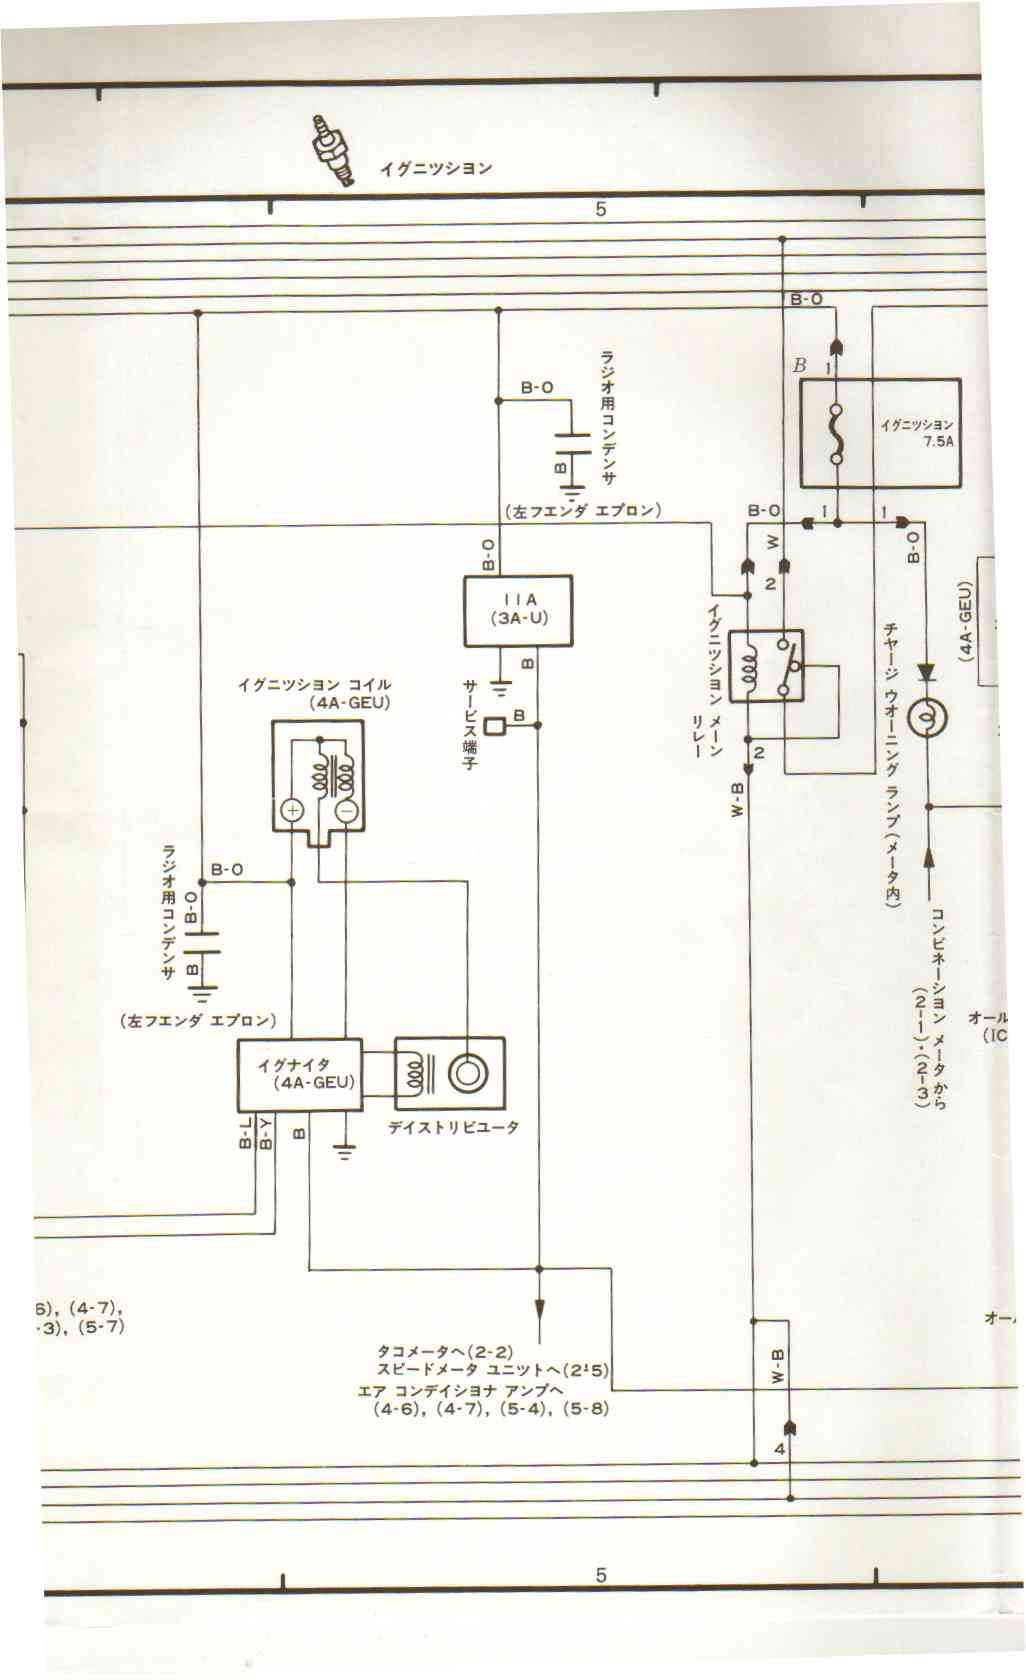 Atv312 Wiring Diagram